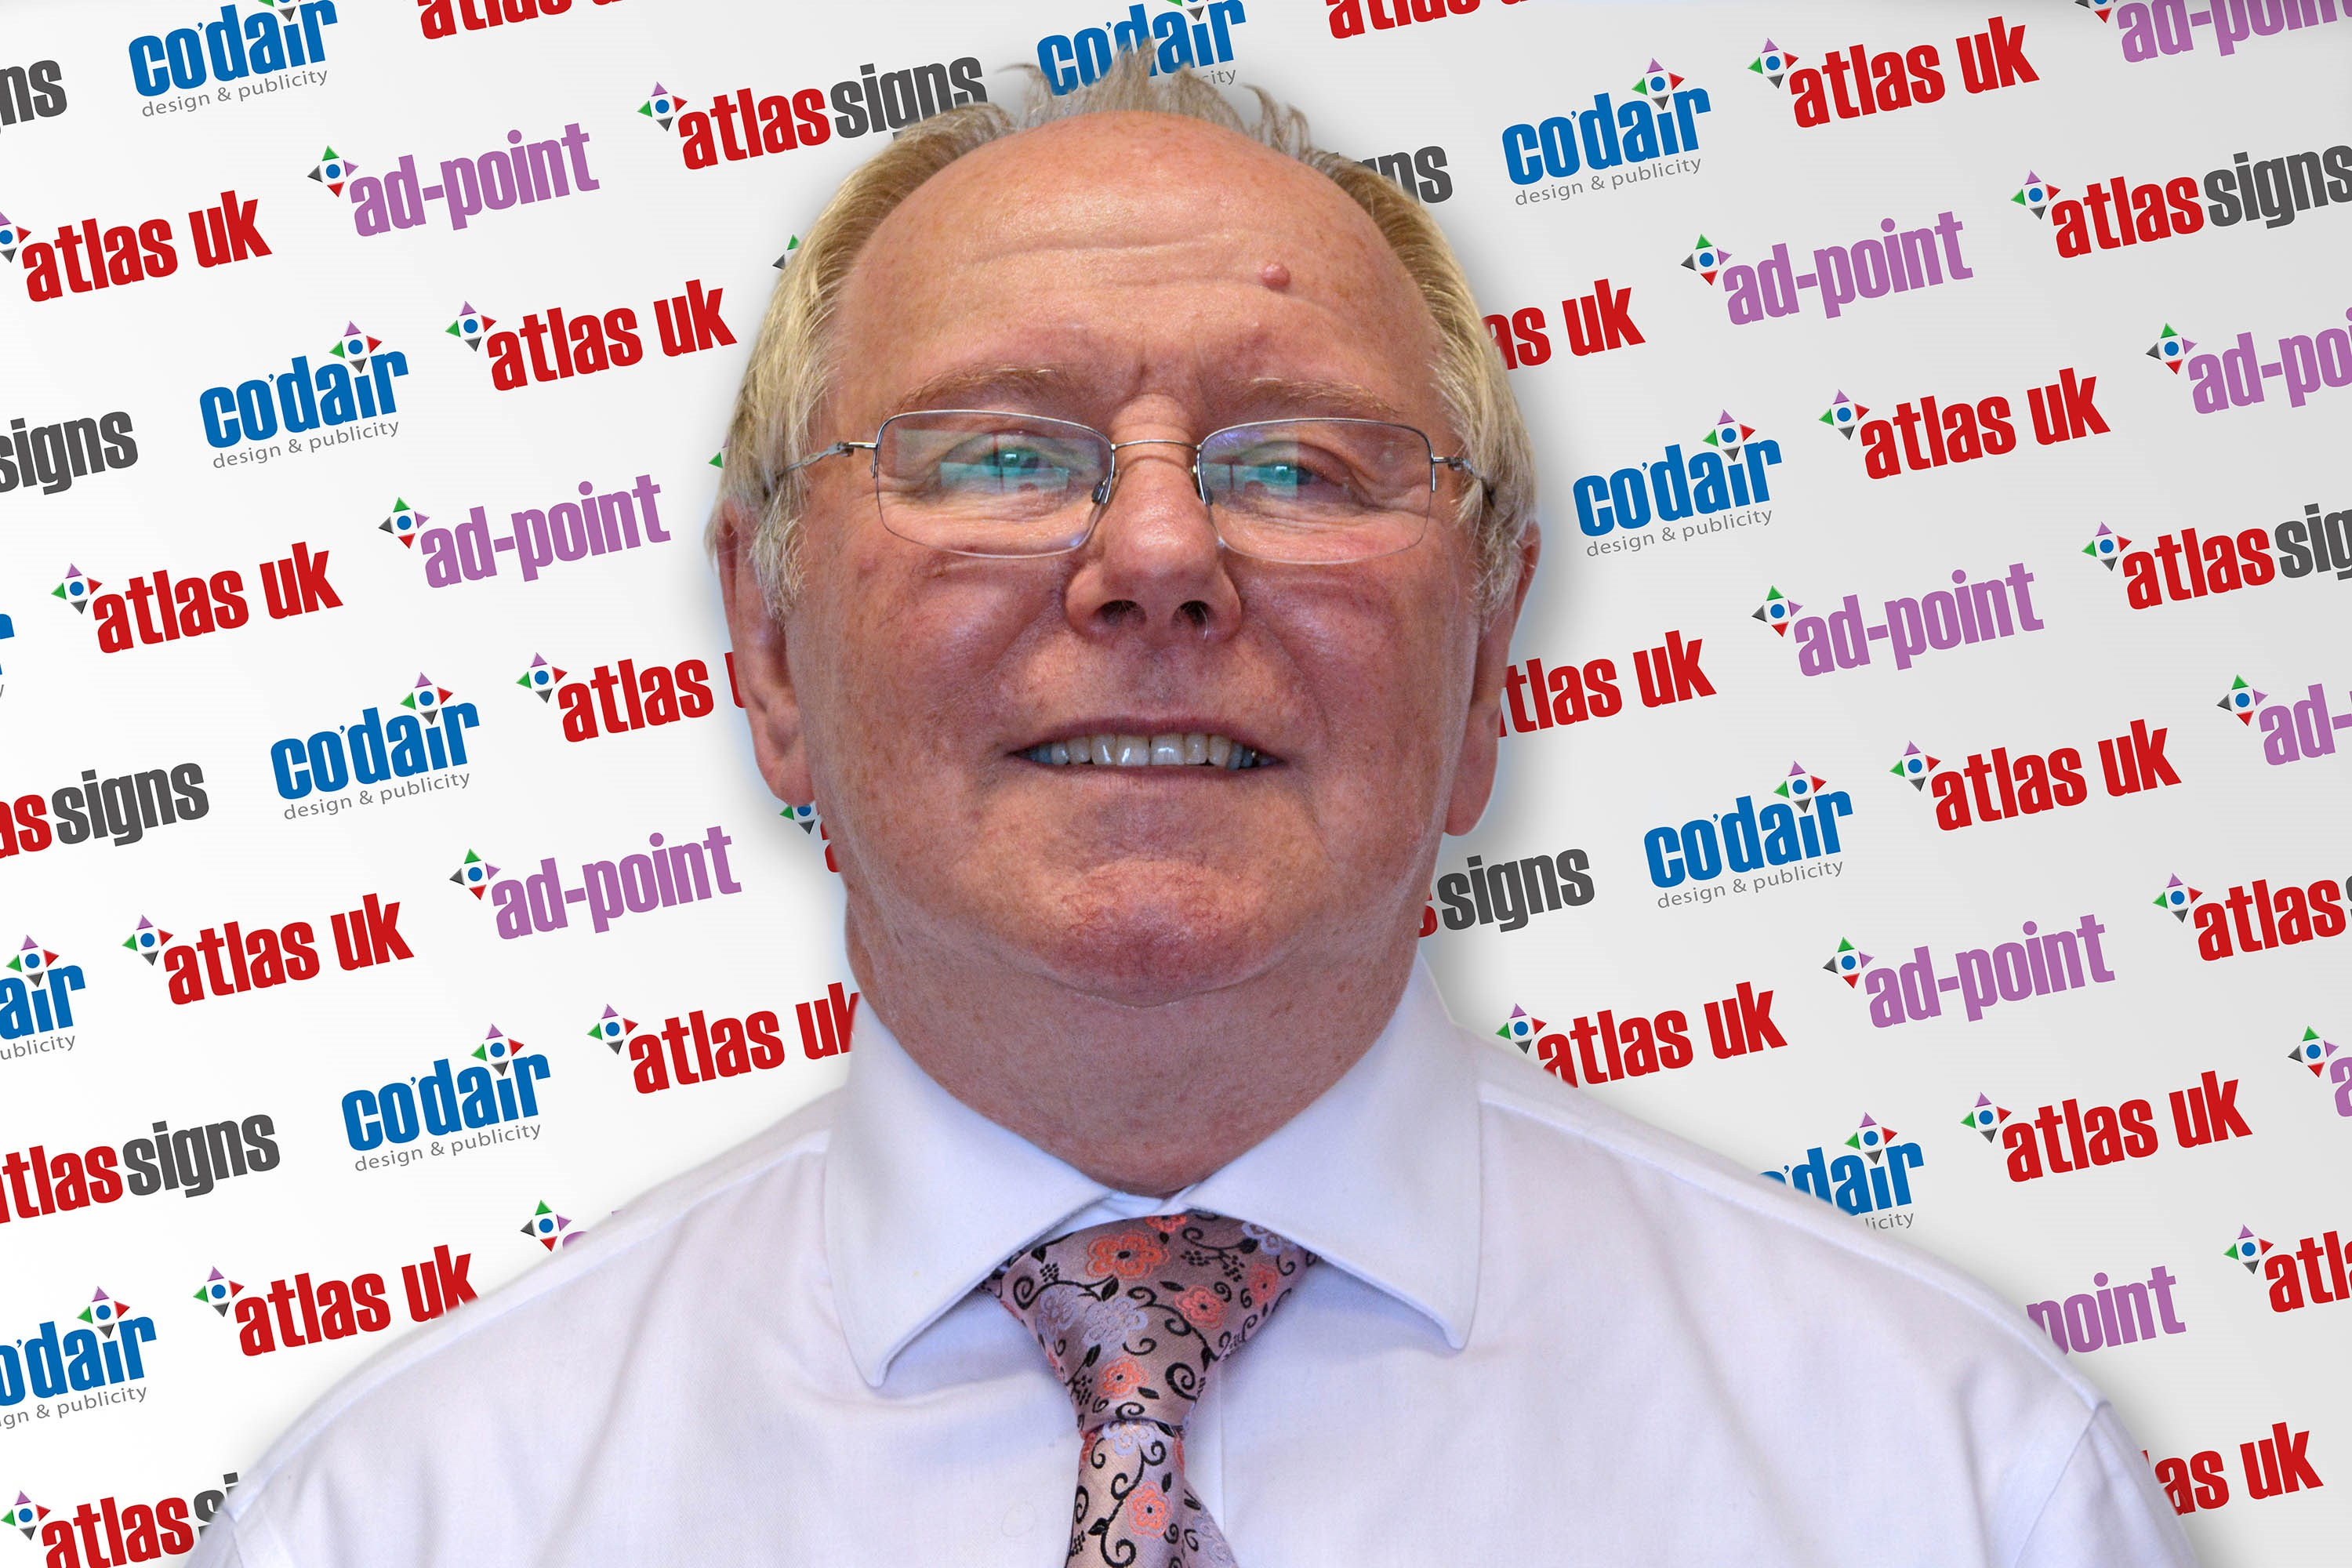 Alan Wheeler, IT and Telecommunications Manager. Codair Design & Publicity Limited